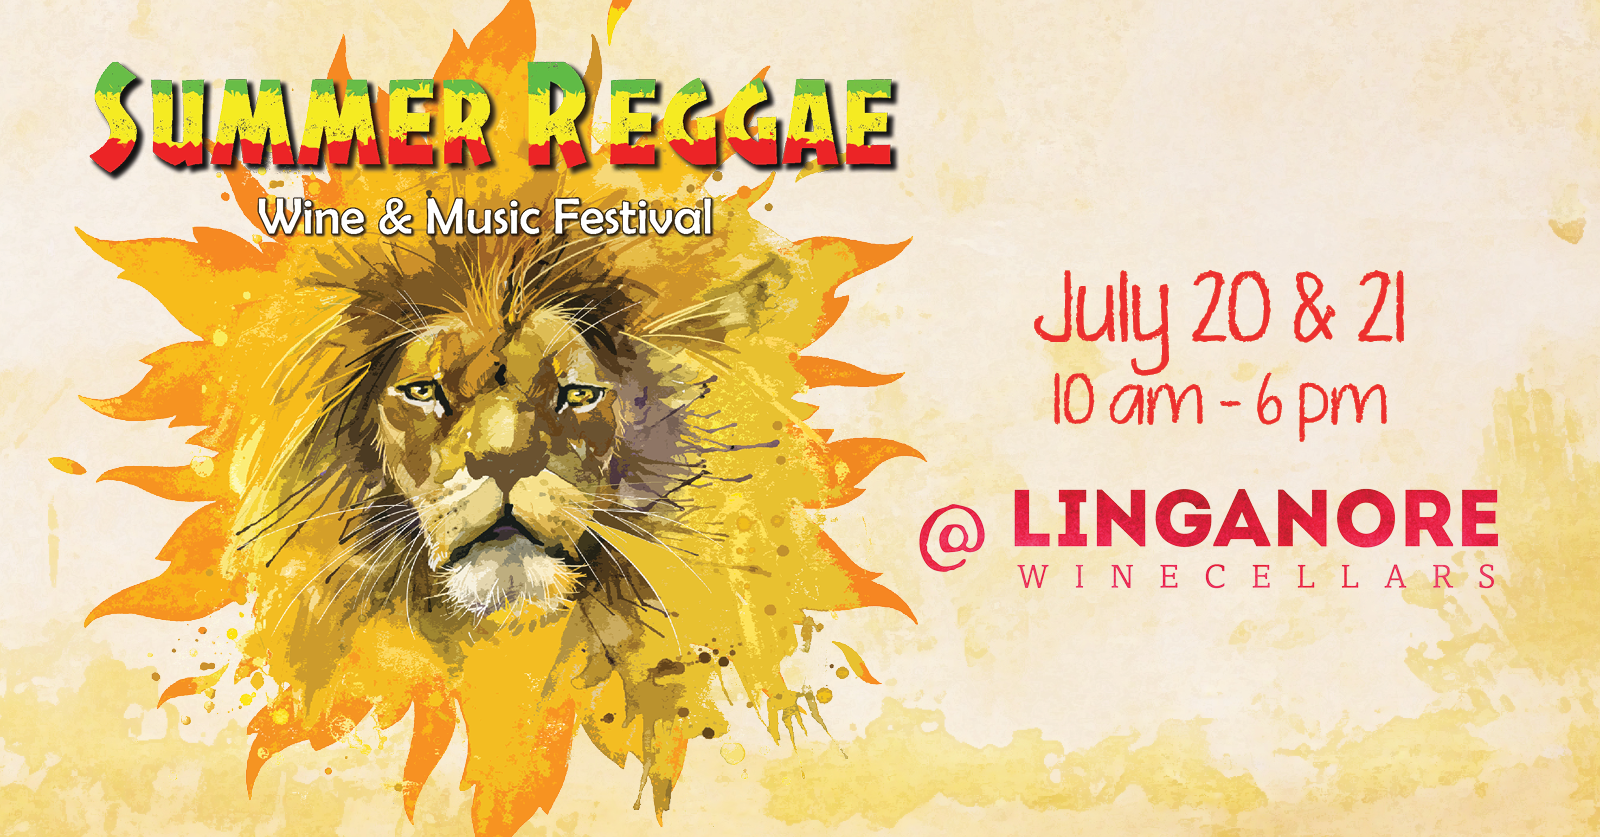 Summer Reggae Wine and Music Festival